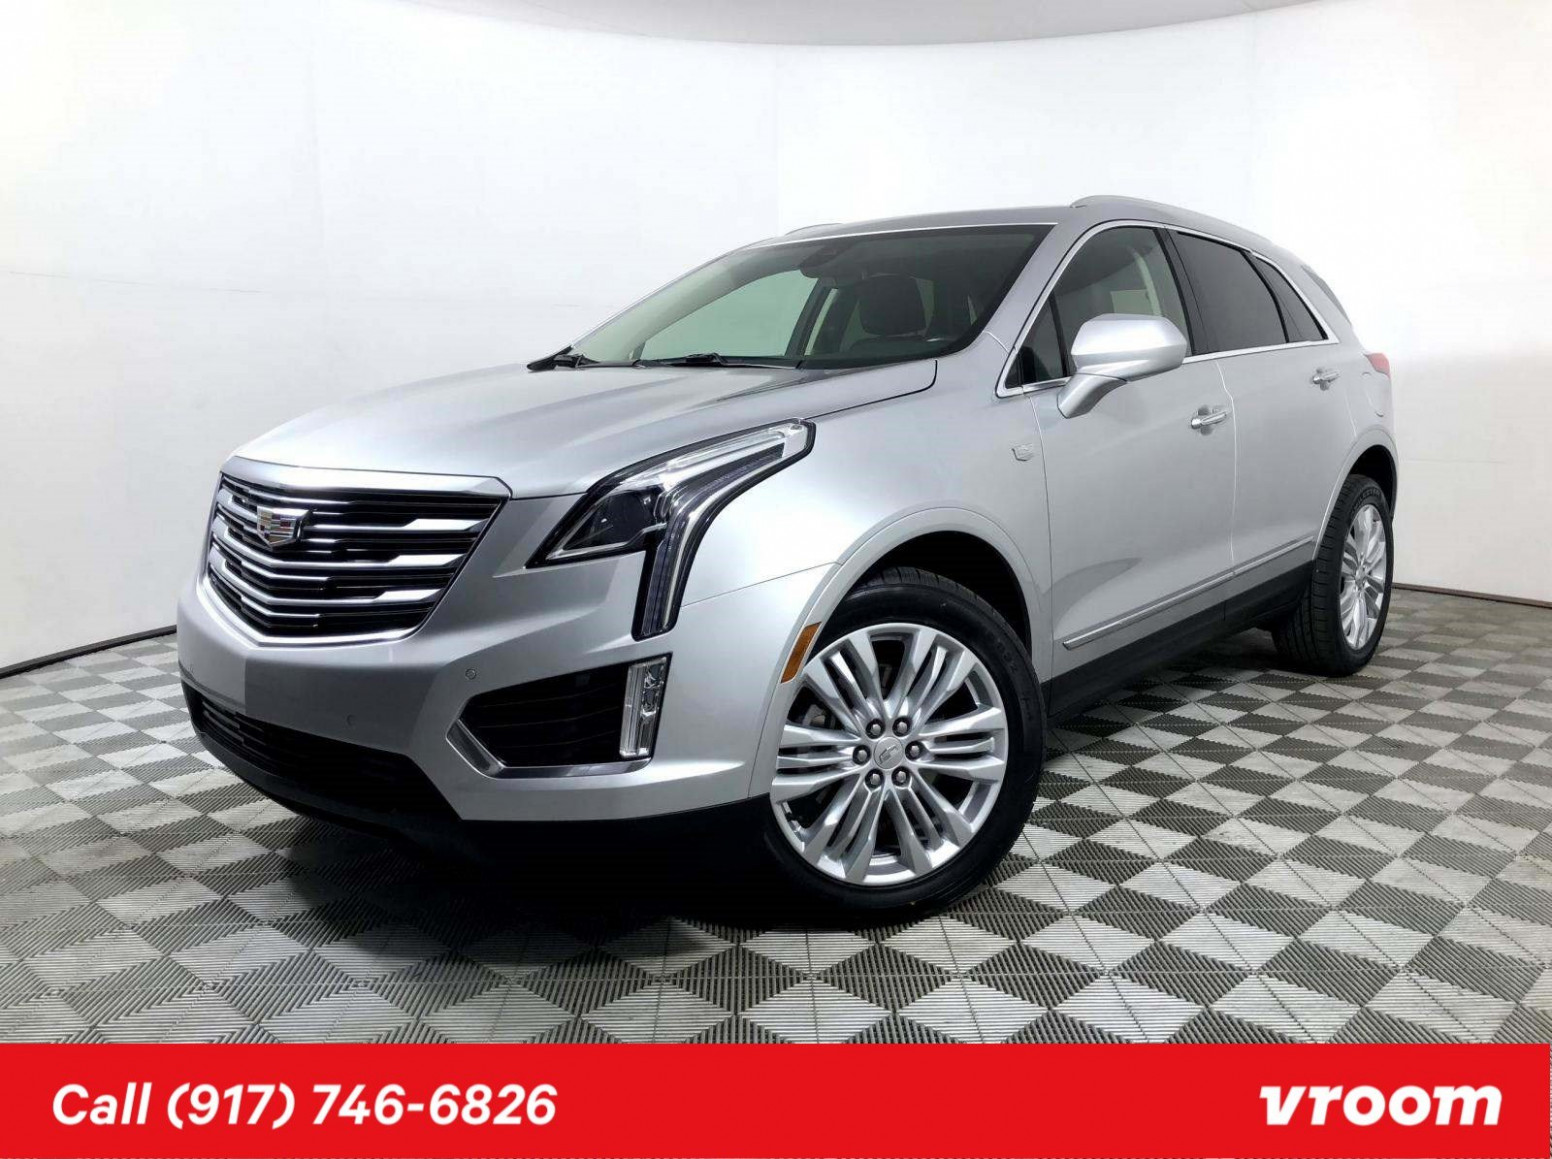 Cadillac XT9 for Sale in Decatur, AL | Kelley Blue Book